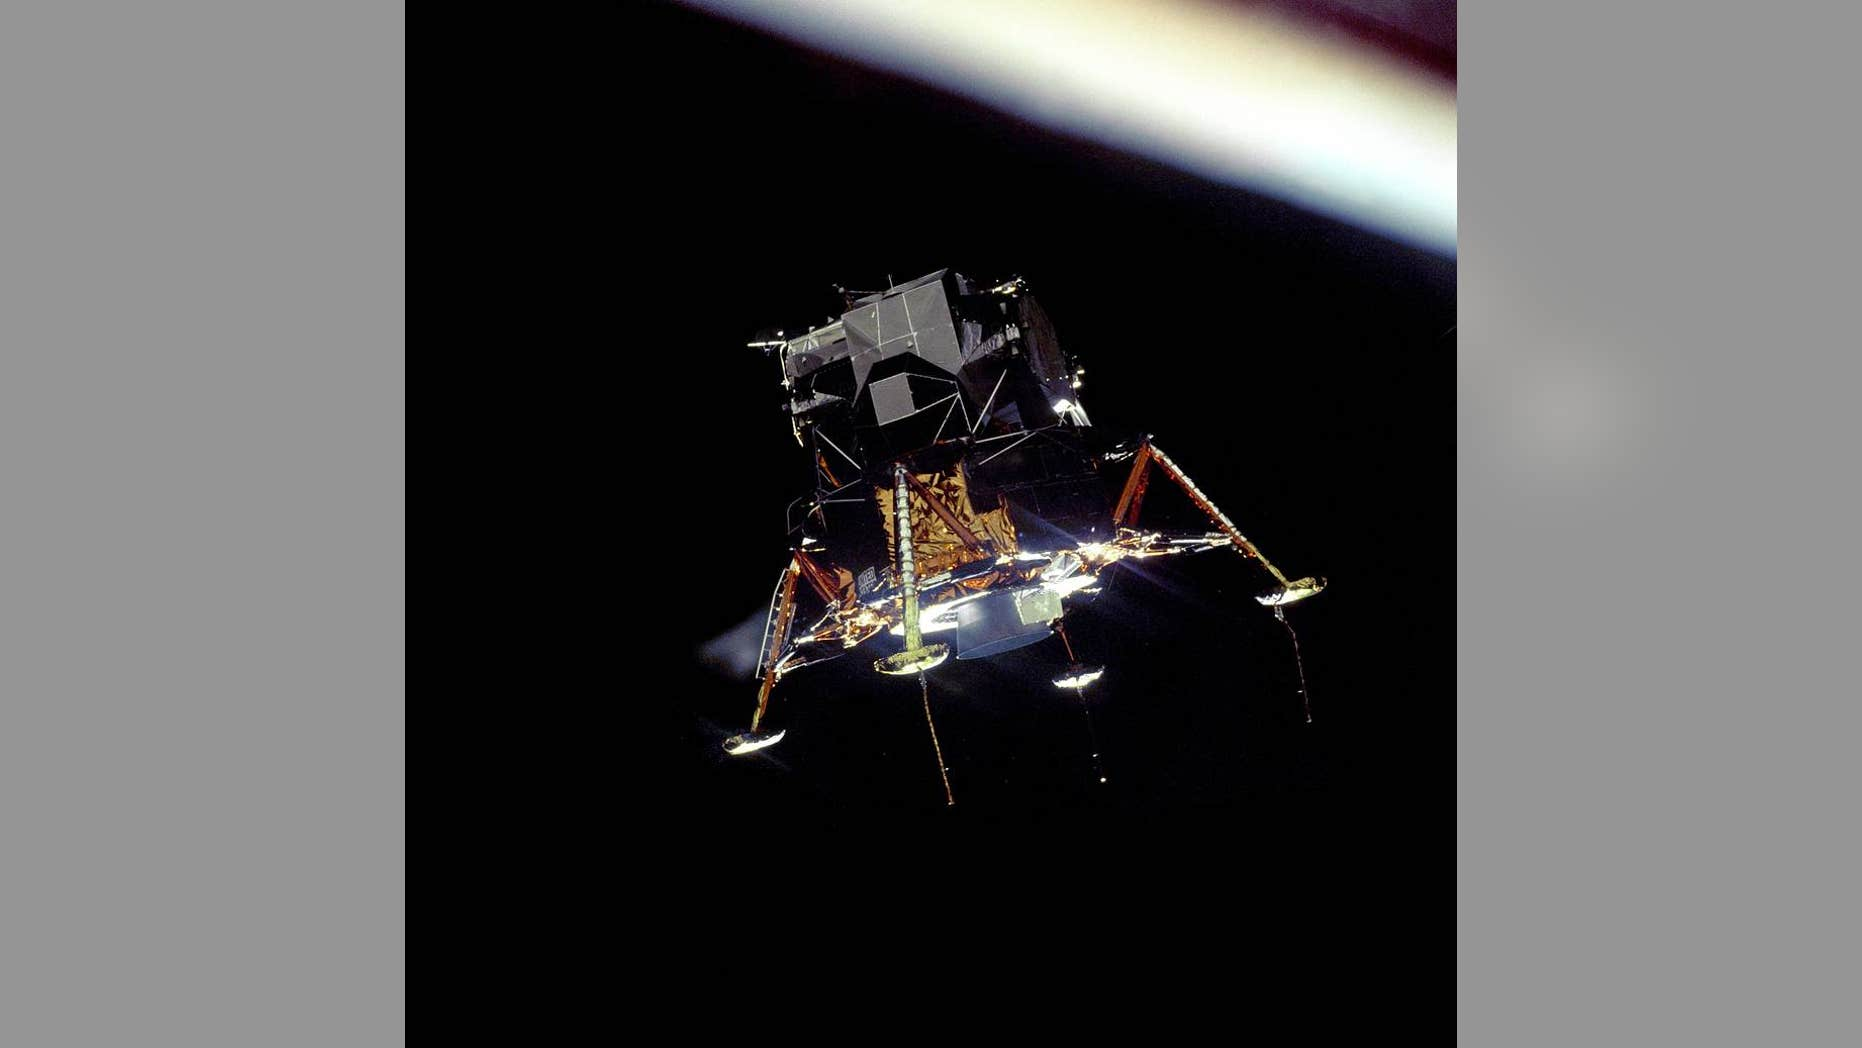 Photo - The Apollo 11 lunar module Eagle in a landing configuration, photographed by the Command and Service Module Columbia. (NASA)